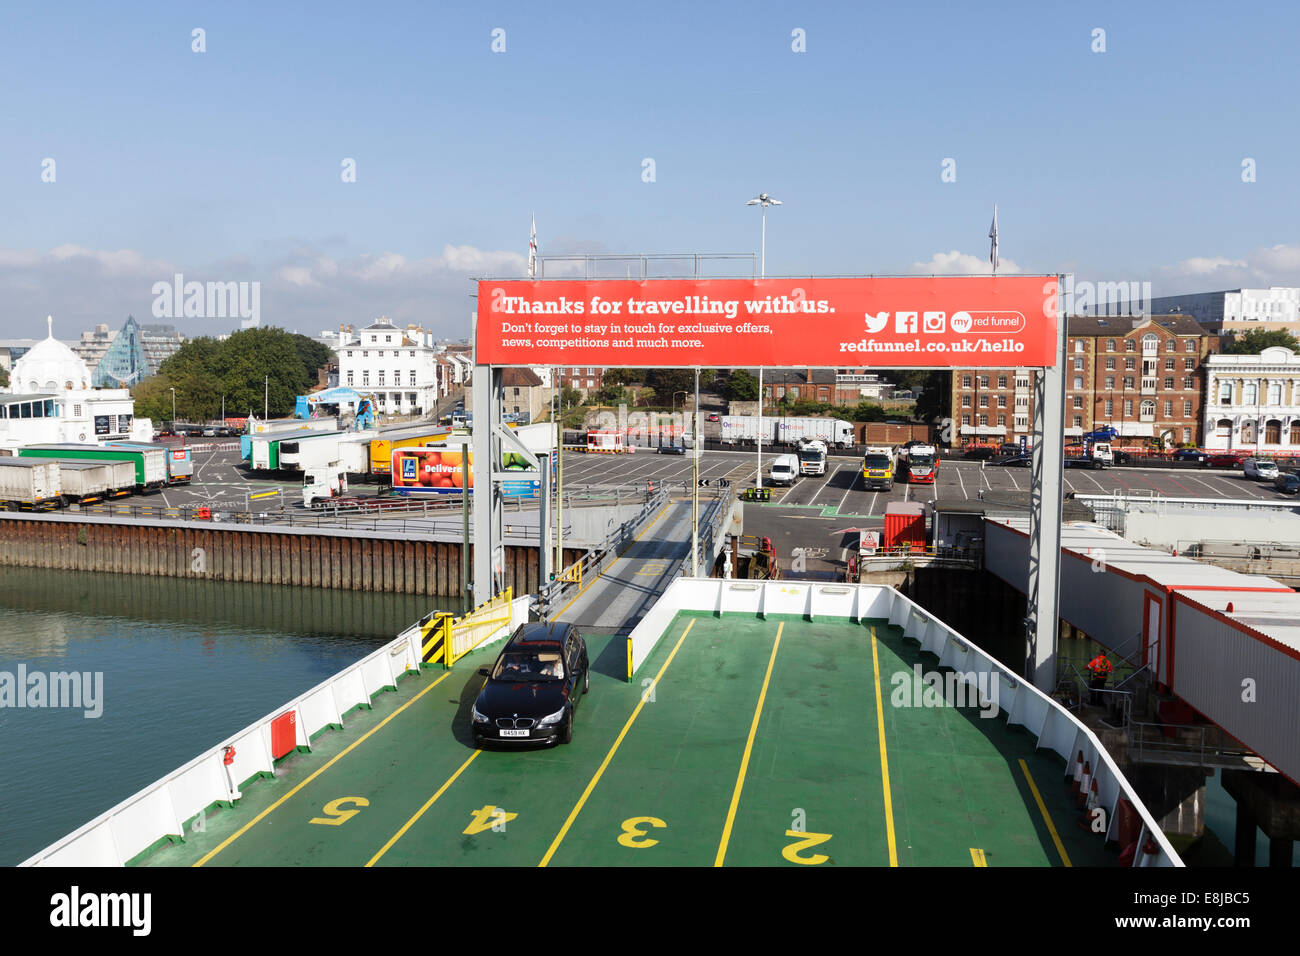 Red Funnel car ferry leaving Southampton, England, UK - Stock Image